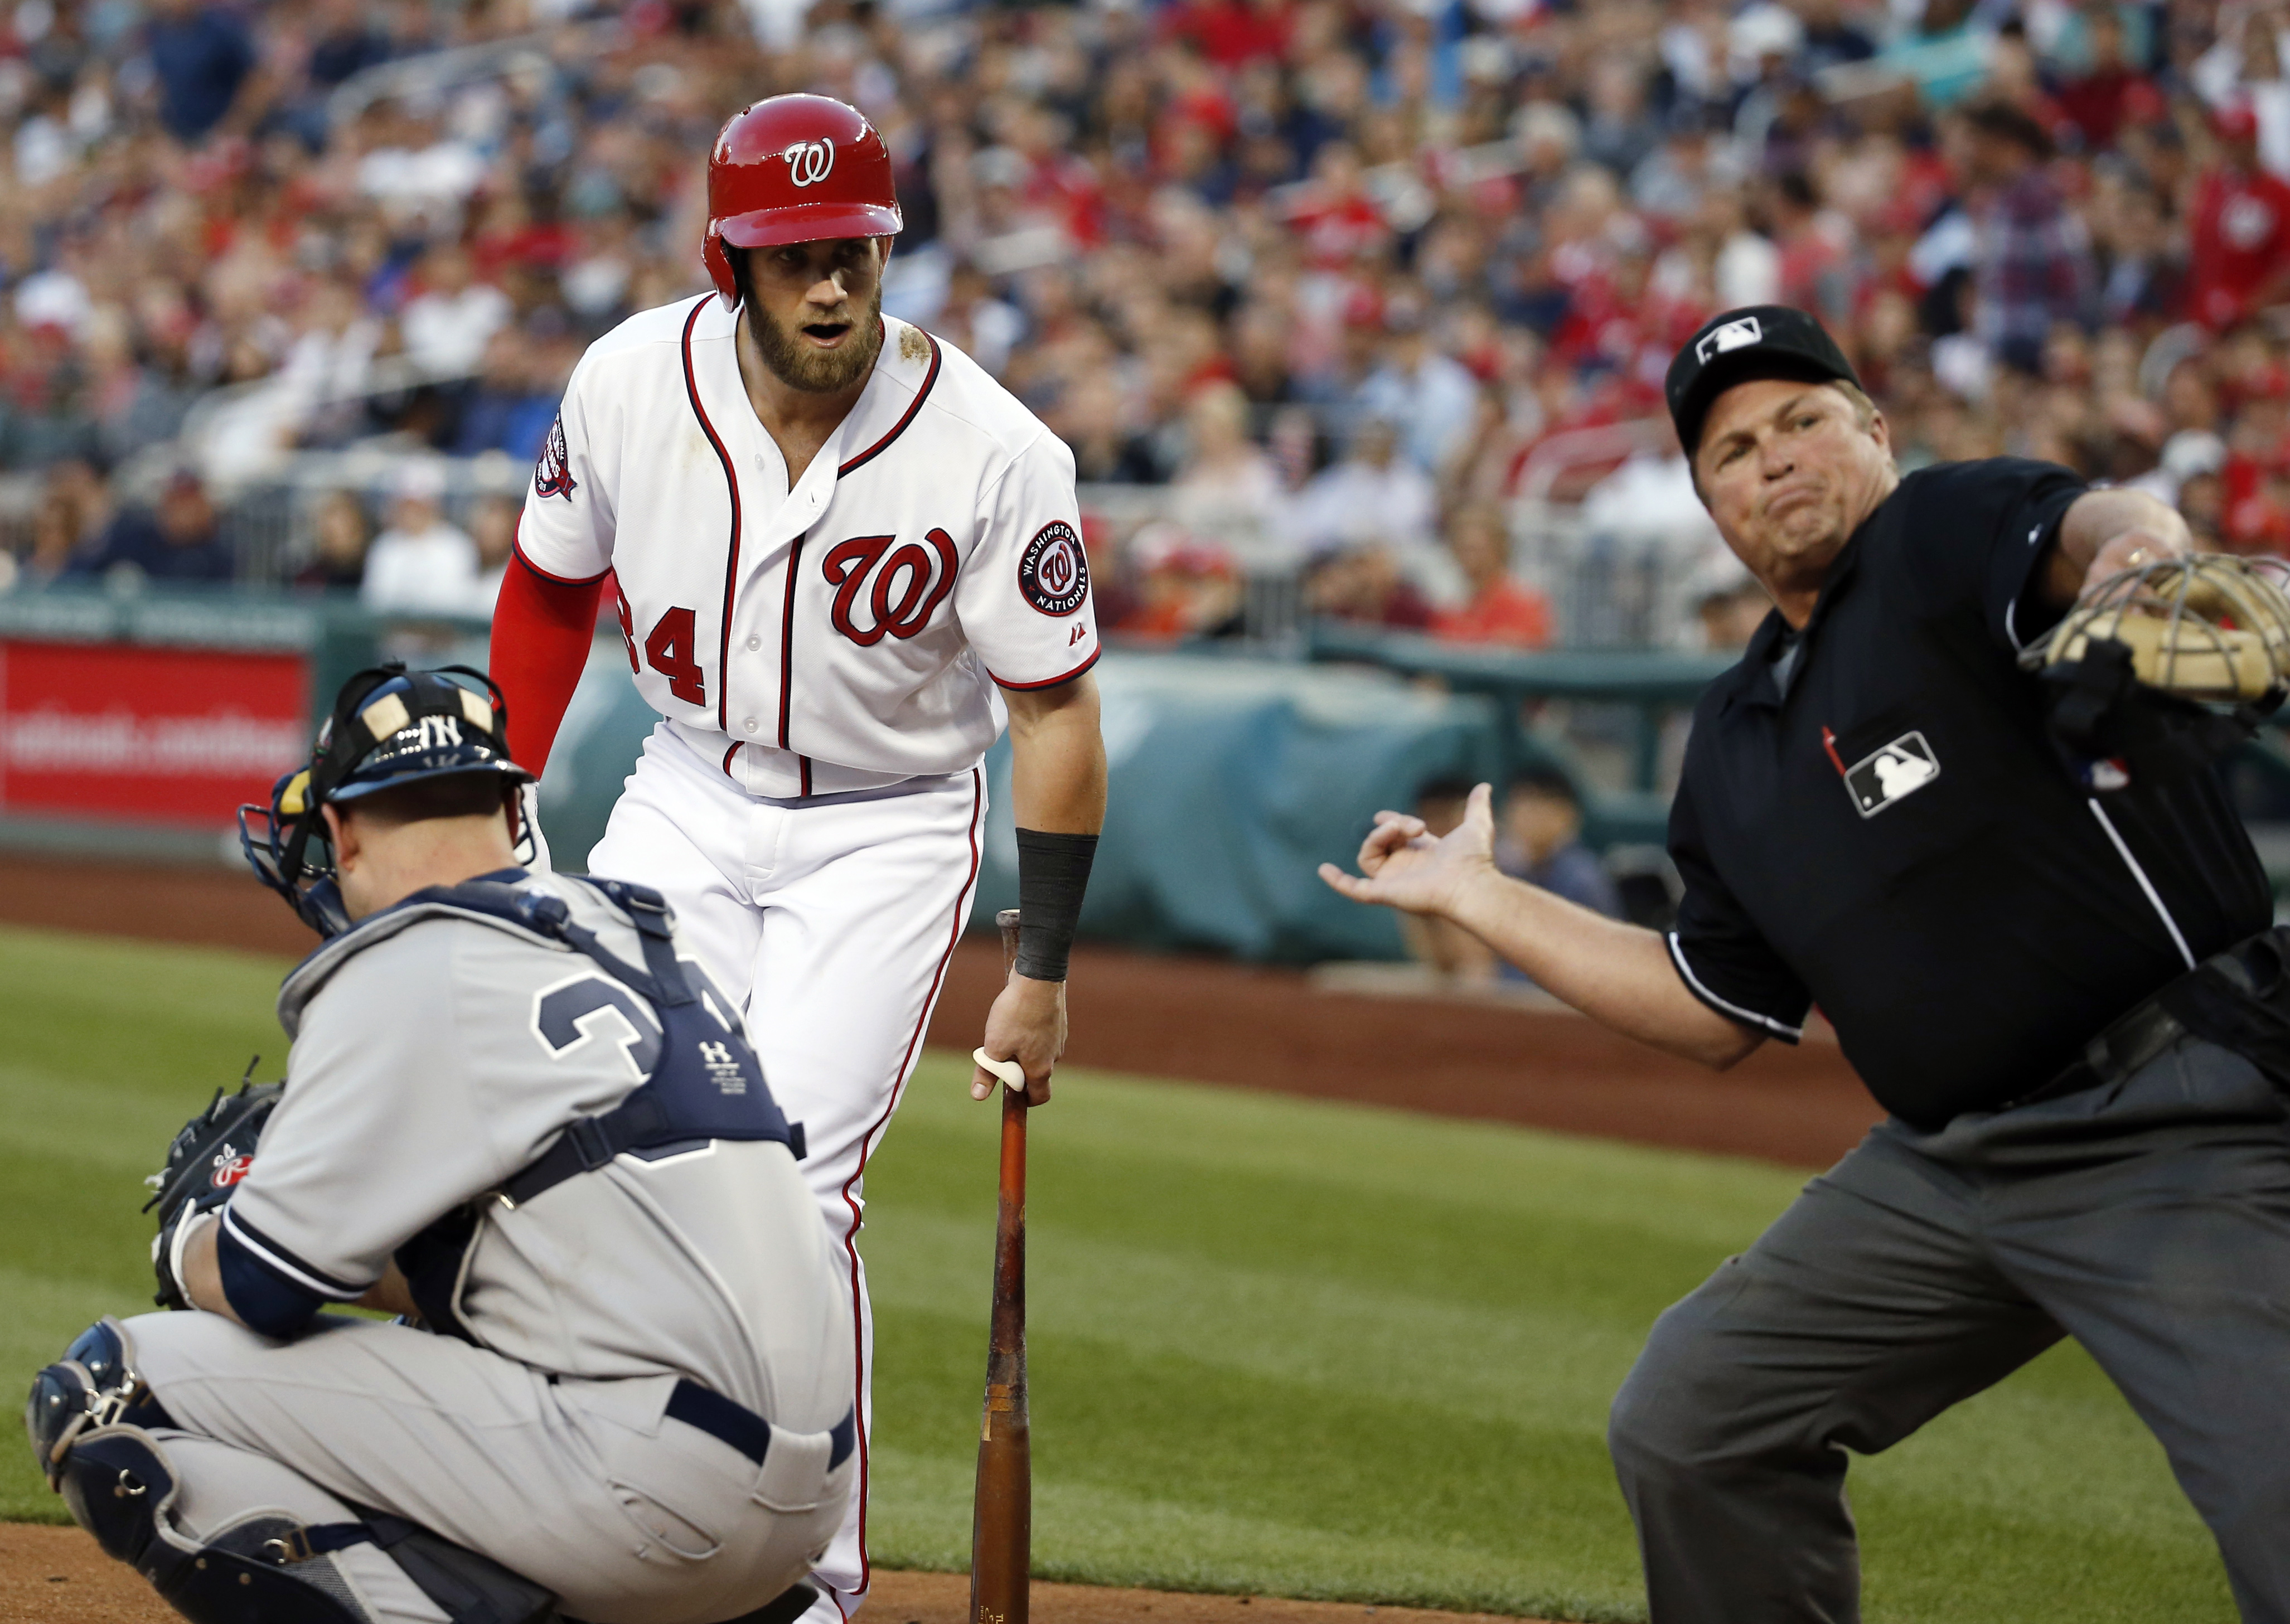 Washington Nationals' Bryce Harper (34) is ejected by home plate umpire Marvin Hudson during the third inning of a  baseball game against the New York Yankees at Nationals Park, Wednesday, May 20, 2015, in Washington. Nationals manager Matt Williams was l